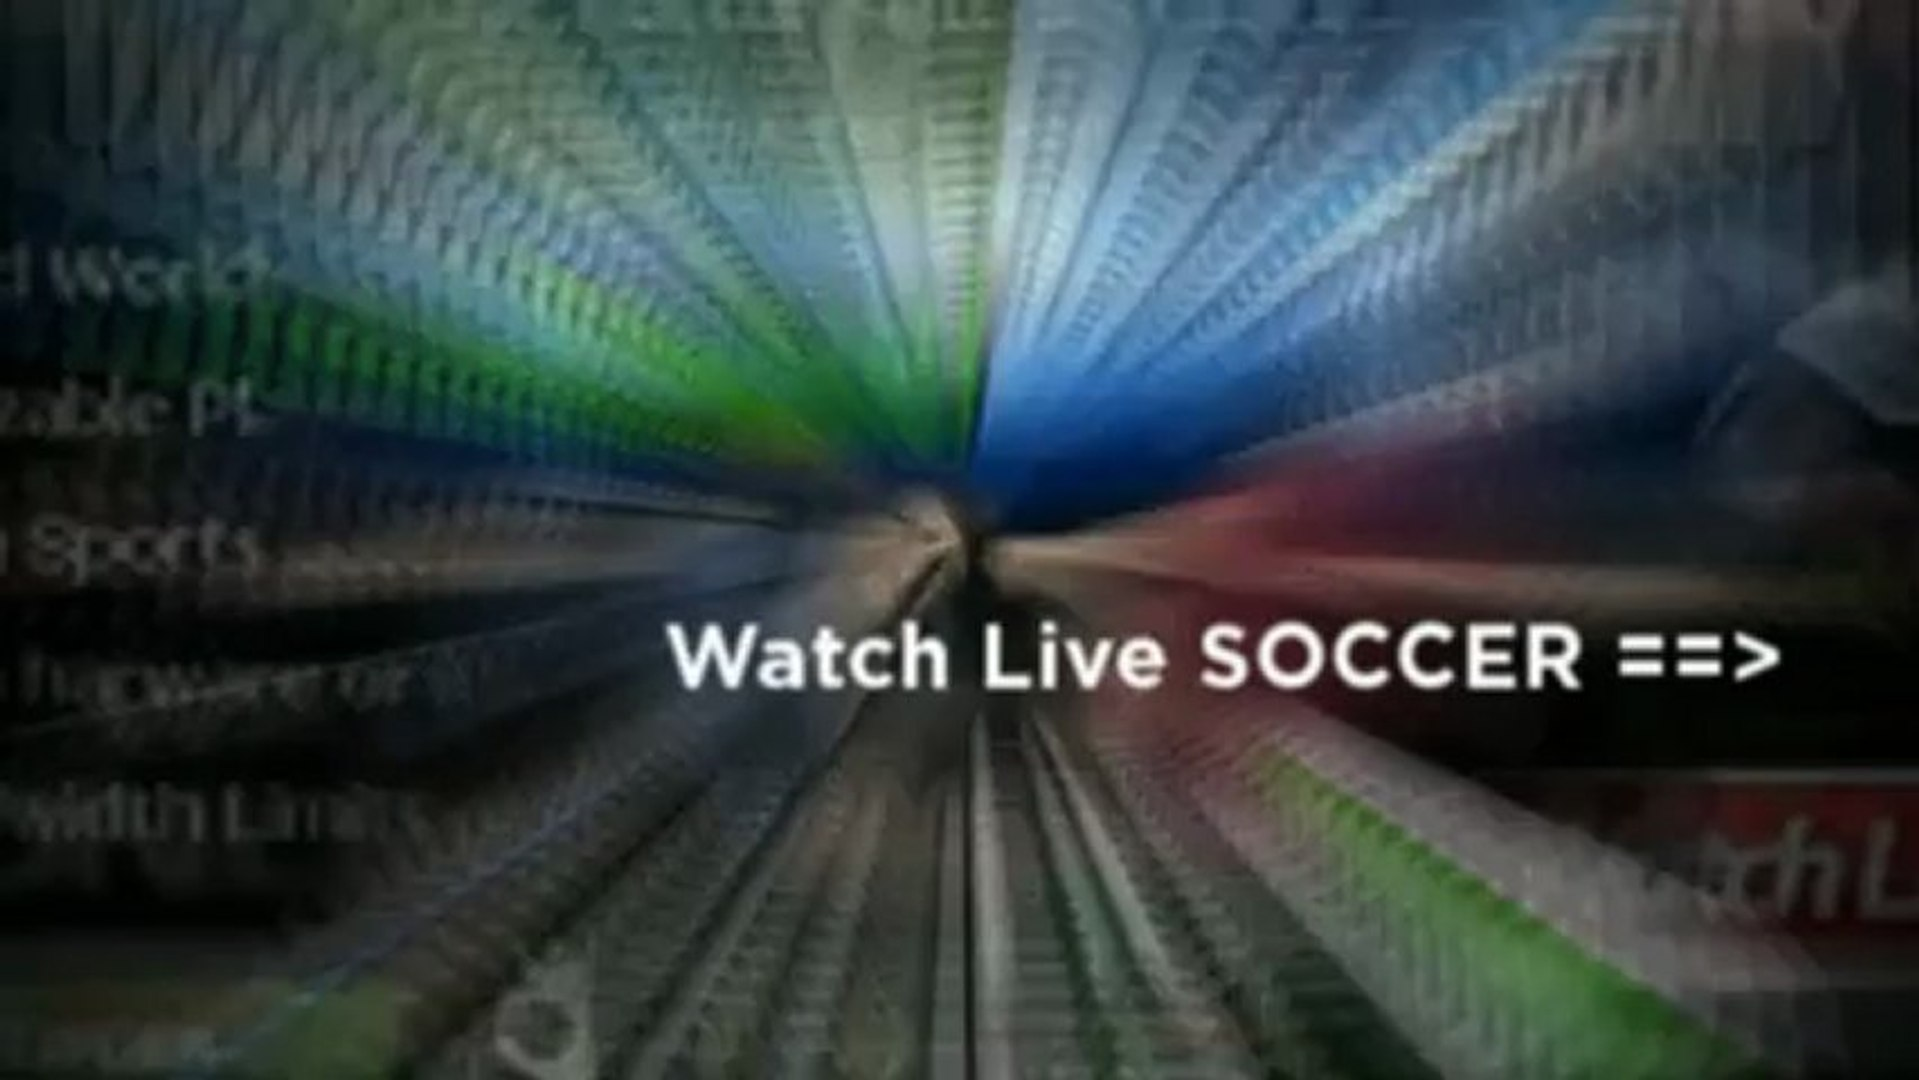 Free State Stars v Bidvest Wits - South Africa: Premier - highlights 2012 - watch live Football - wa